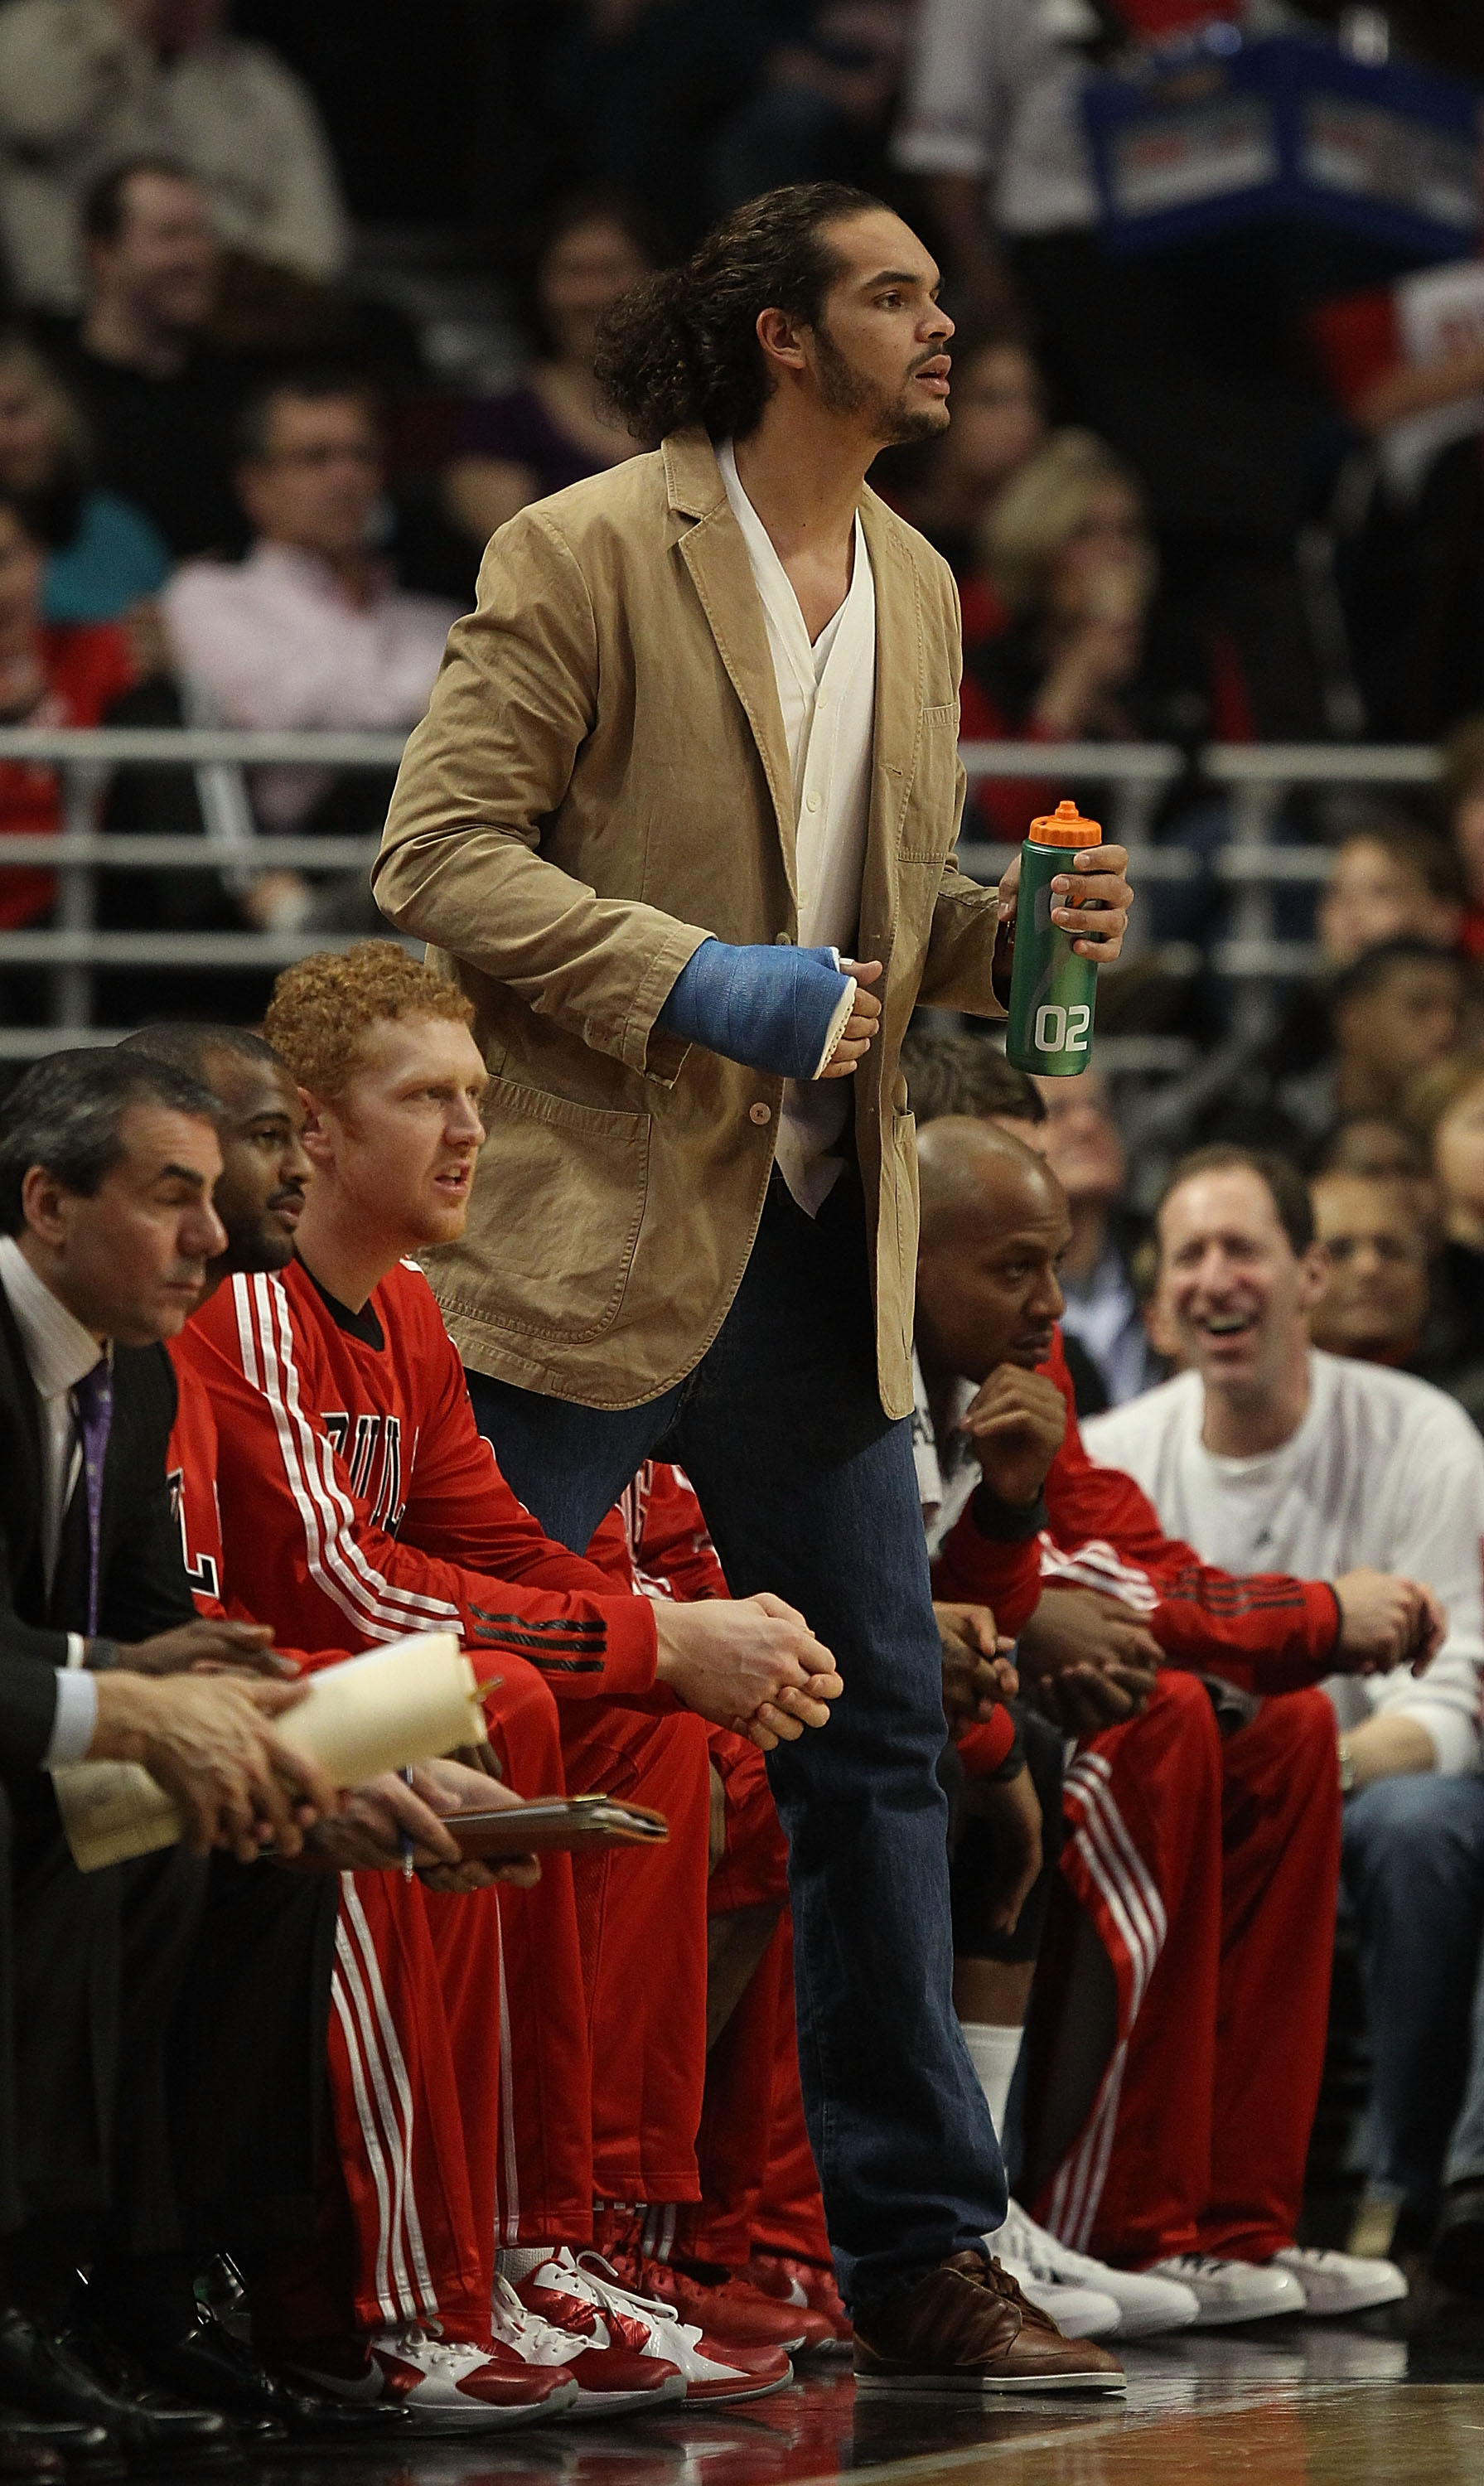 CHICAGO, IL - DECEMBER 21: Injured player Joakim Noah of the Chicago Bulls watches as his teammates take on the Philadelphia 76ers at the United Center on December 21, 2010 in Chicago, Illinois. The Bulls defeated the 76ers 121-76. NOTE TO USER: User expr